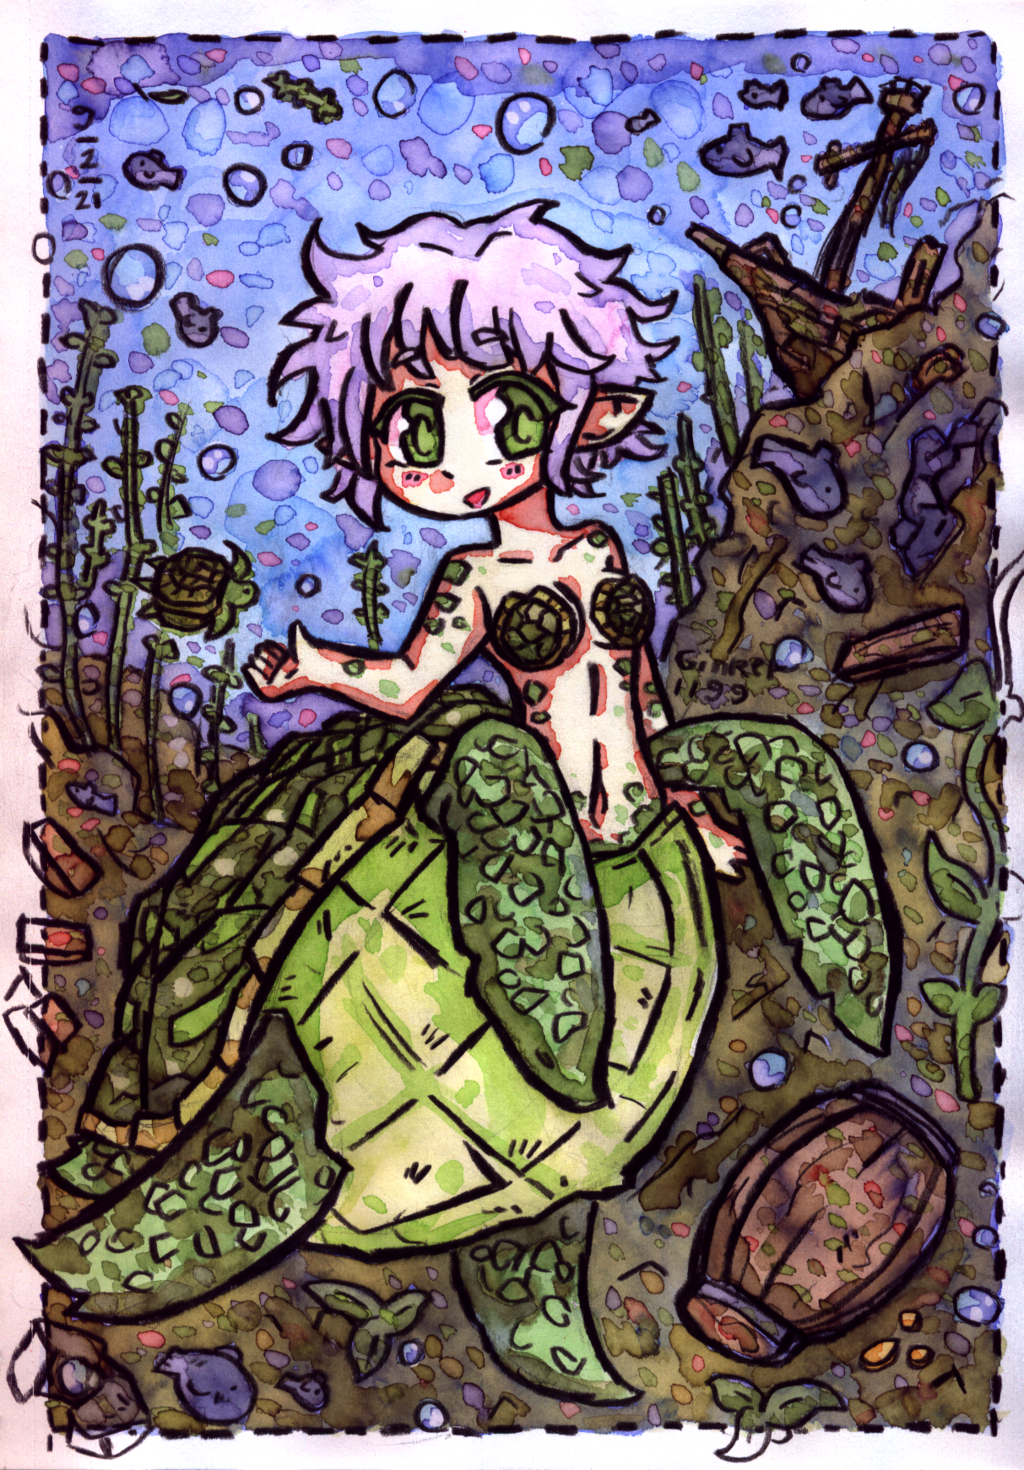 Most recent image: [BP Reflections] Akiko the merturtle~